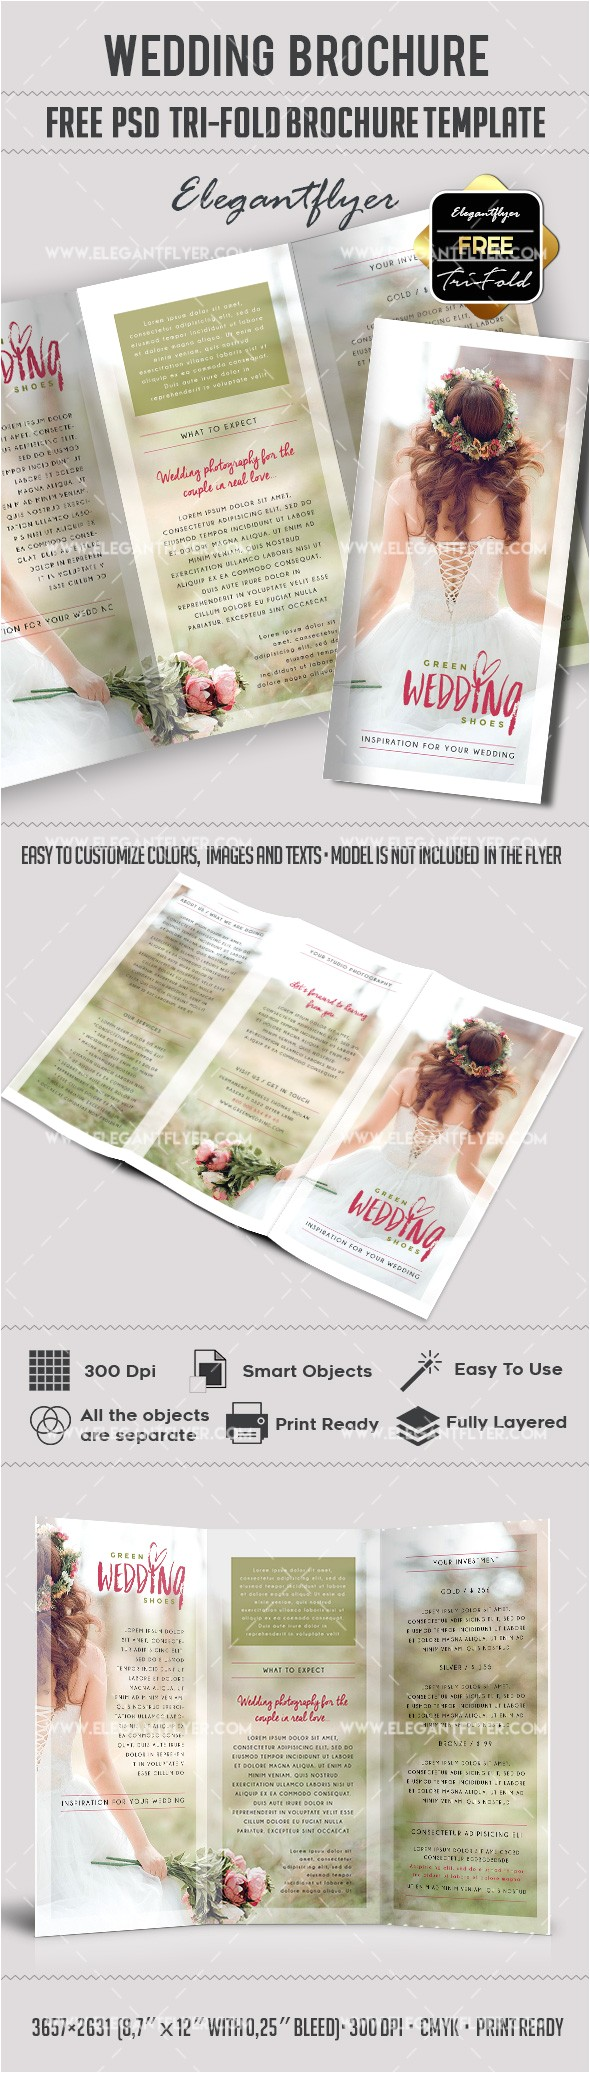 Free Tri Fold Wedding Brochure Templates Wedding Free Tri Fold Psd Brochure Template by